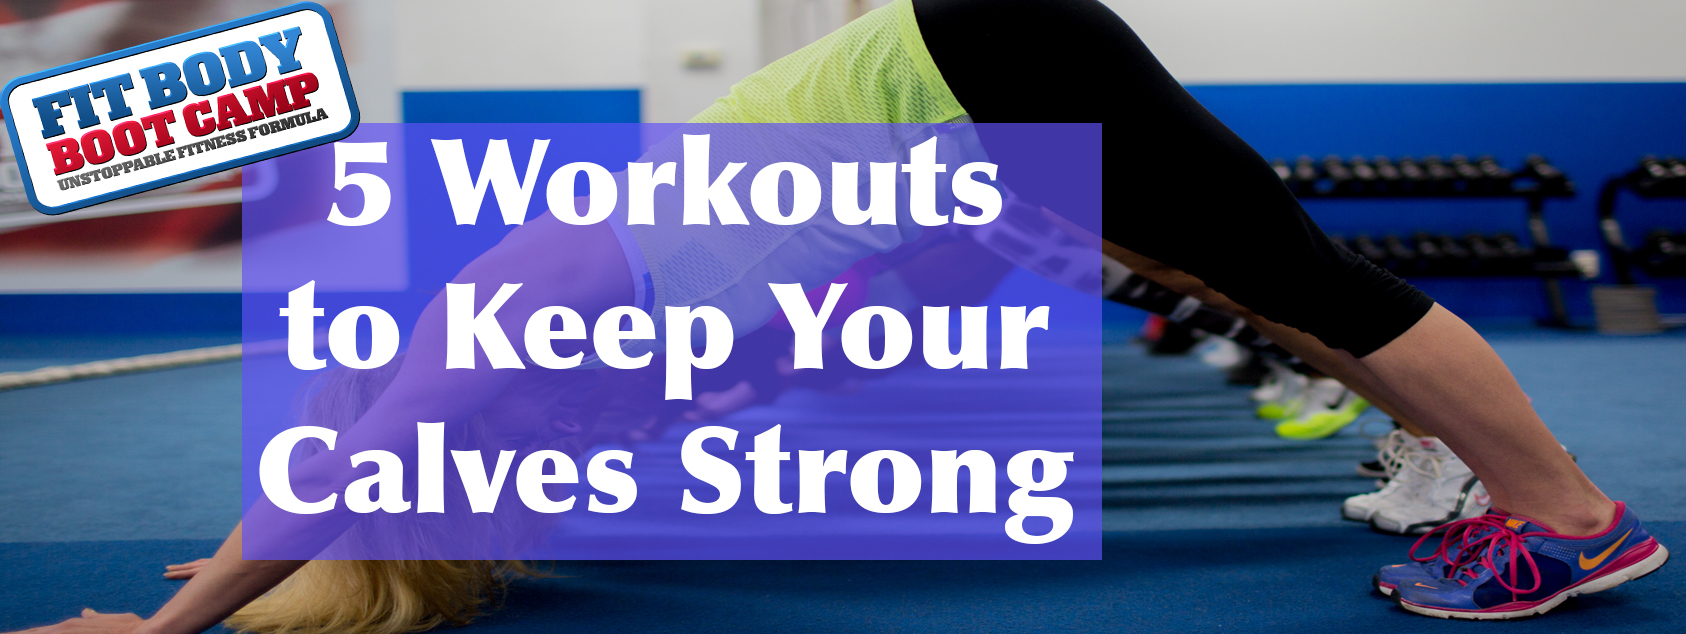 5 Workouts to Keep Your Calves Strong